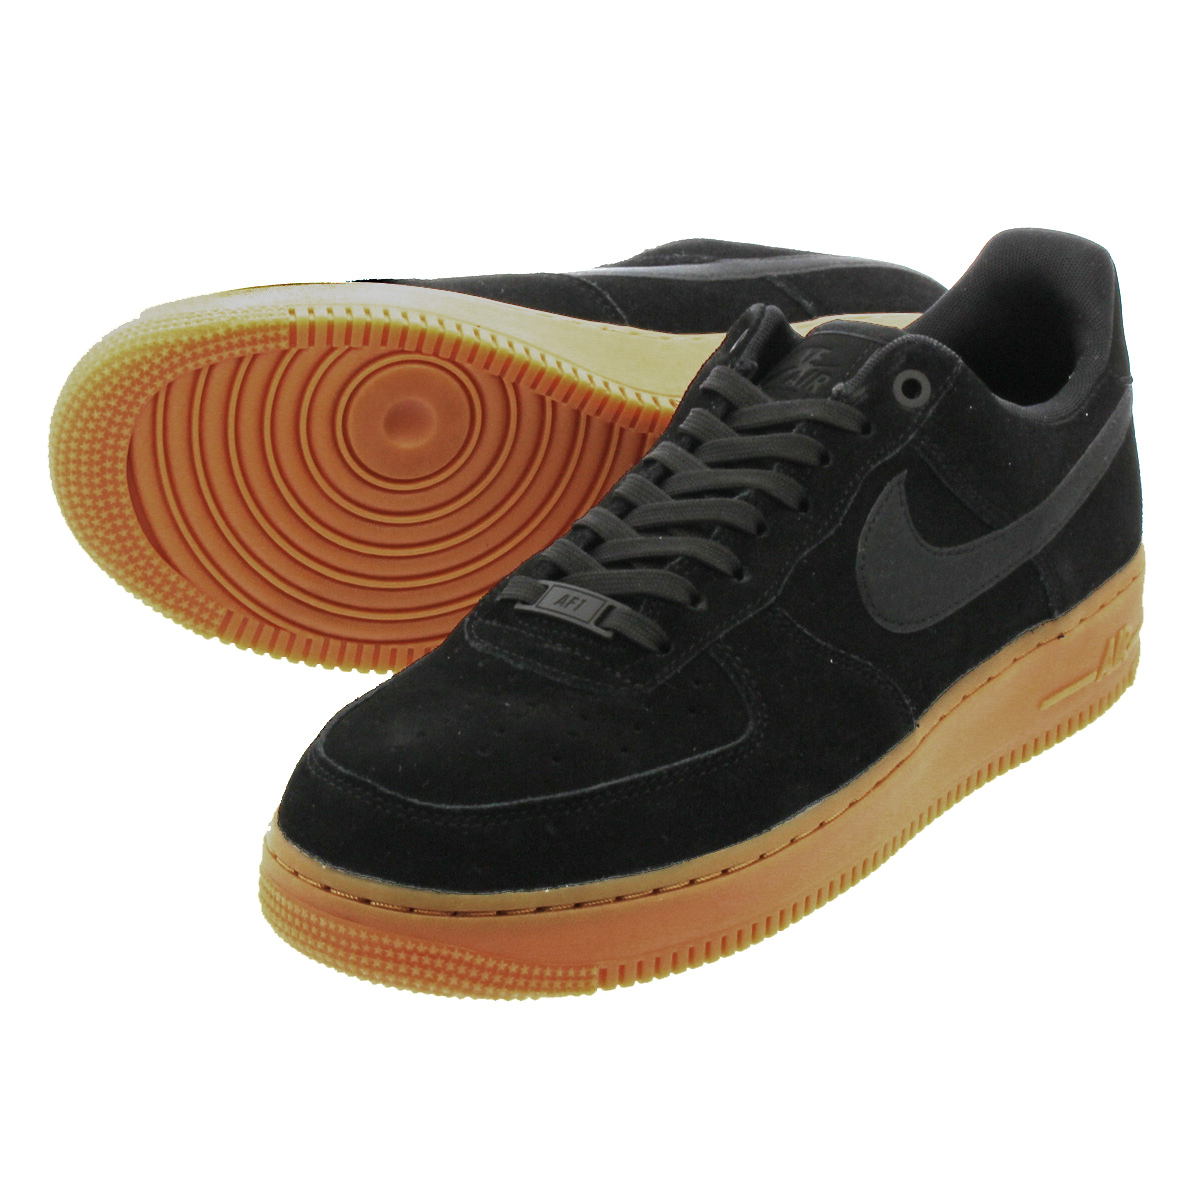 e6b0e7173002 NIKE AIR FORCE 1  07 LV8 SUEDE Nike air force 1  07 LV8 suede SUEDE BLACK  GUM MEDIUM BROWN IVORY aa1117-001